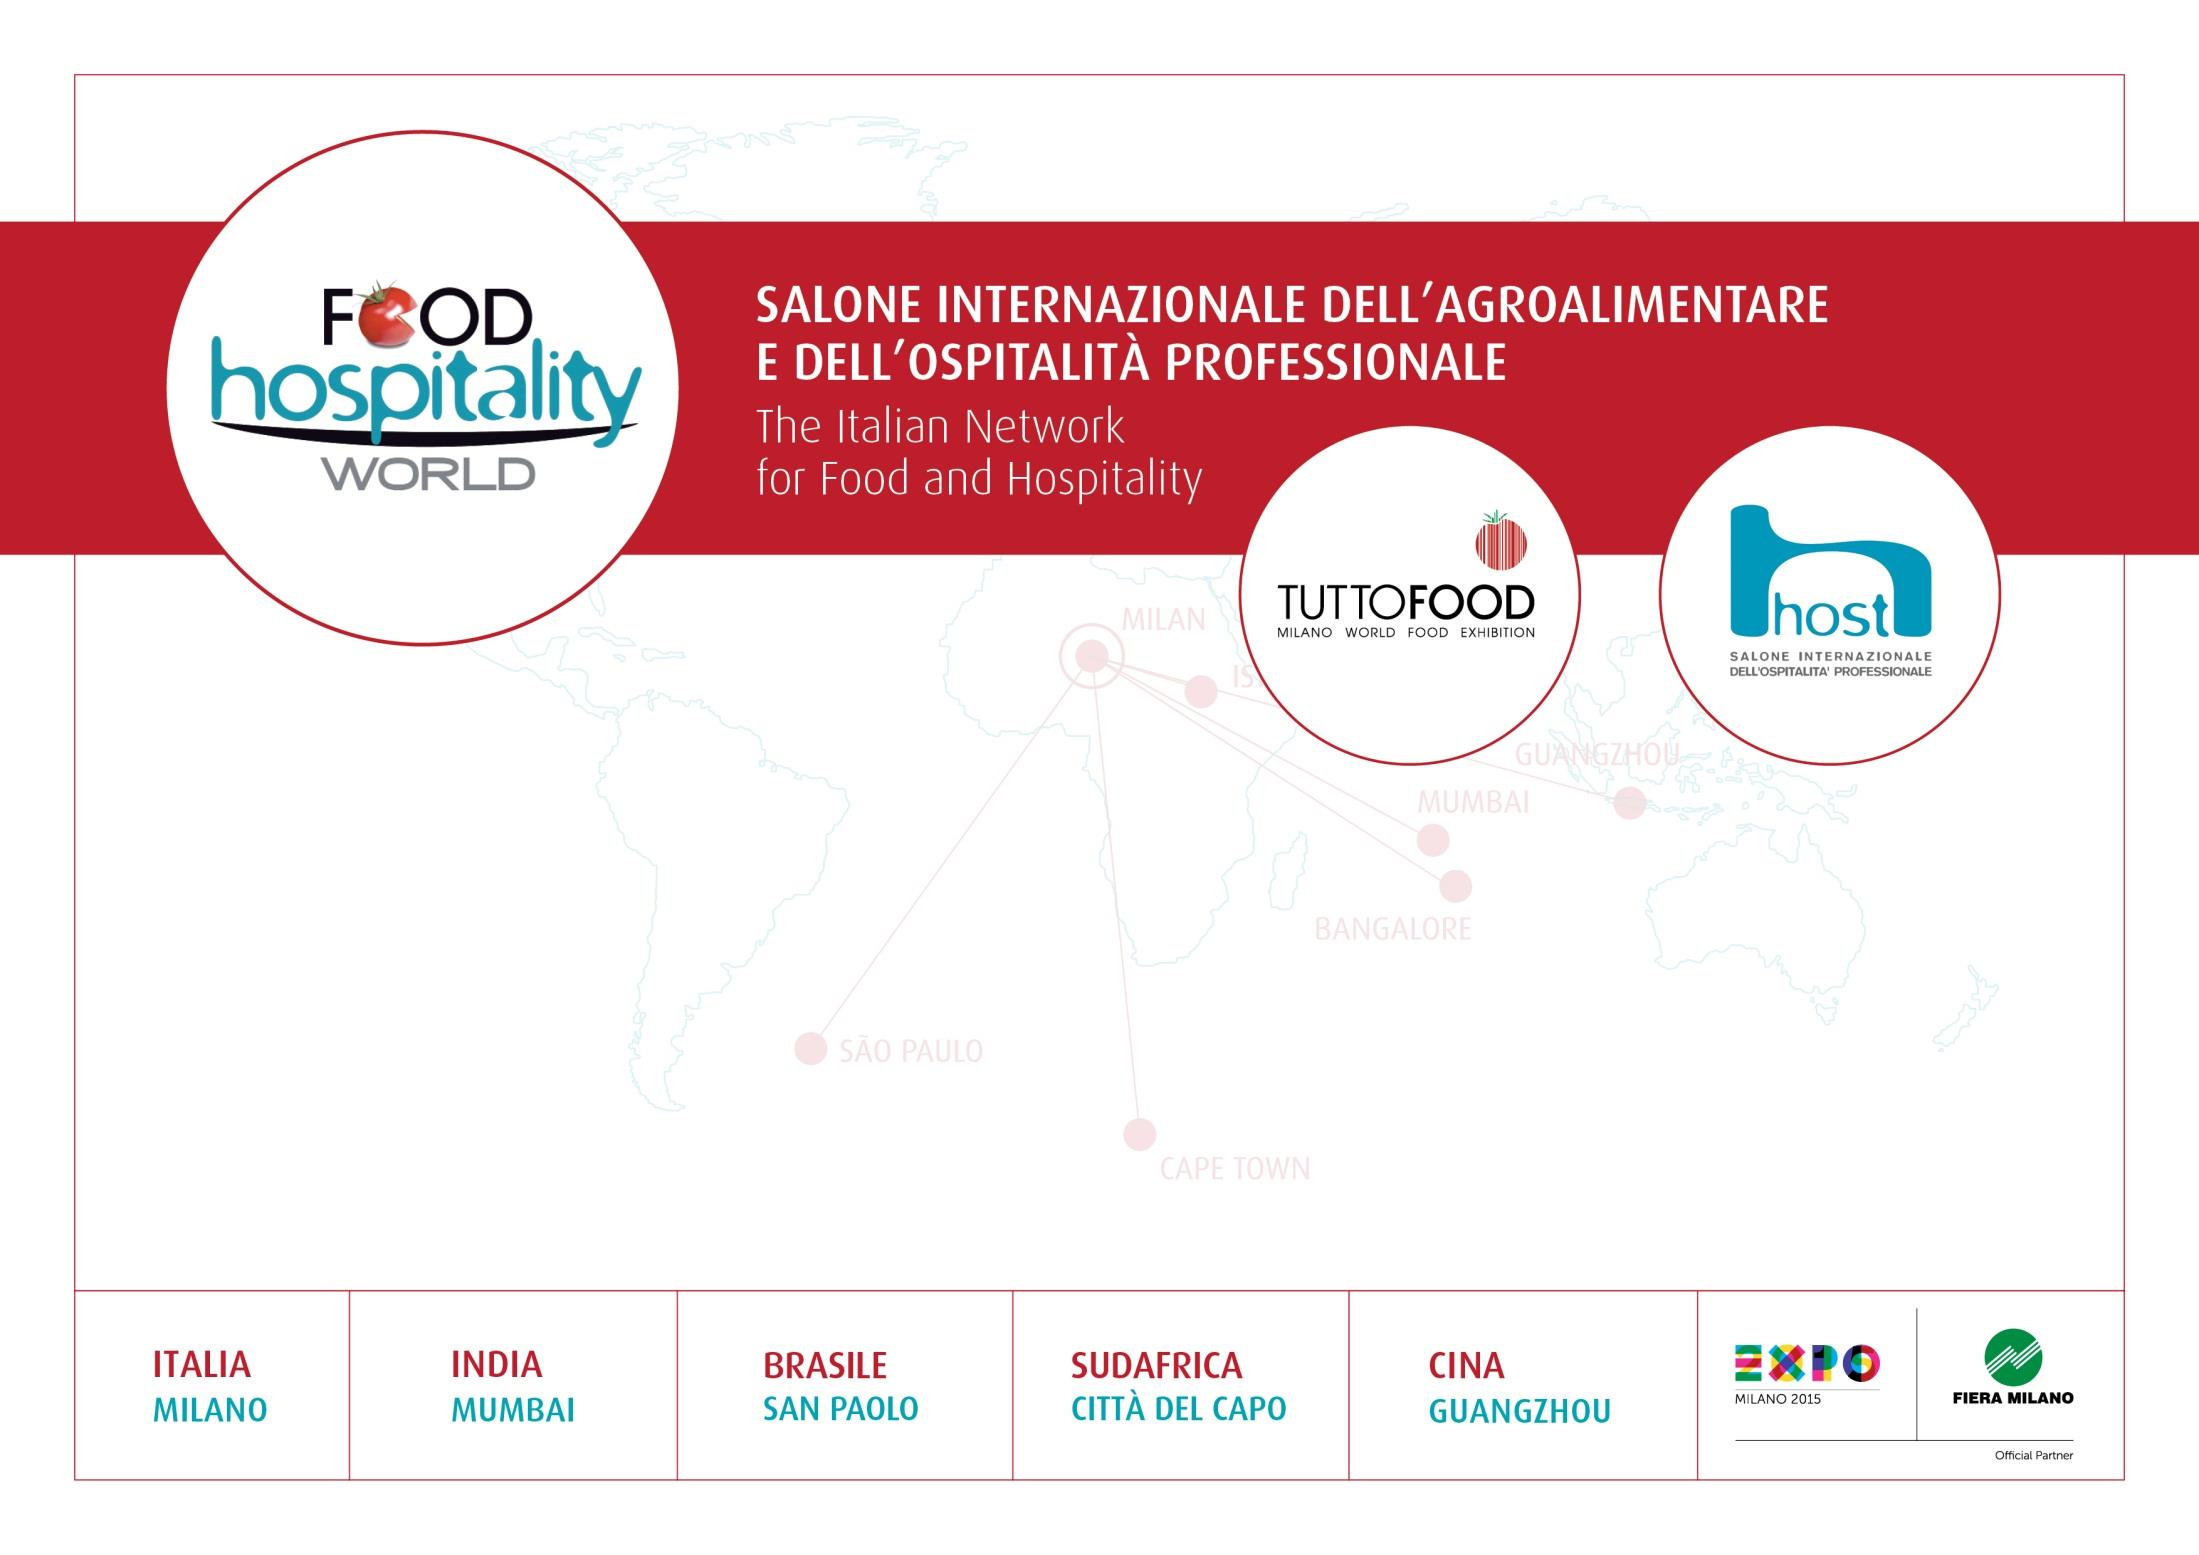 Food Hospitality World (Το Ιταλικό